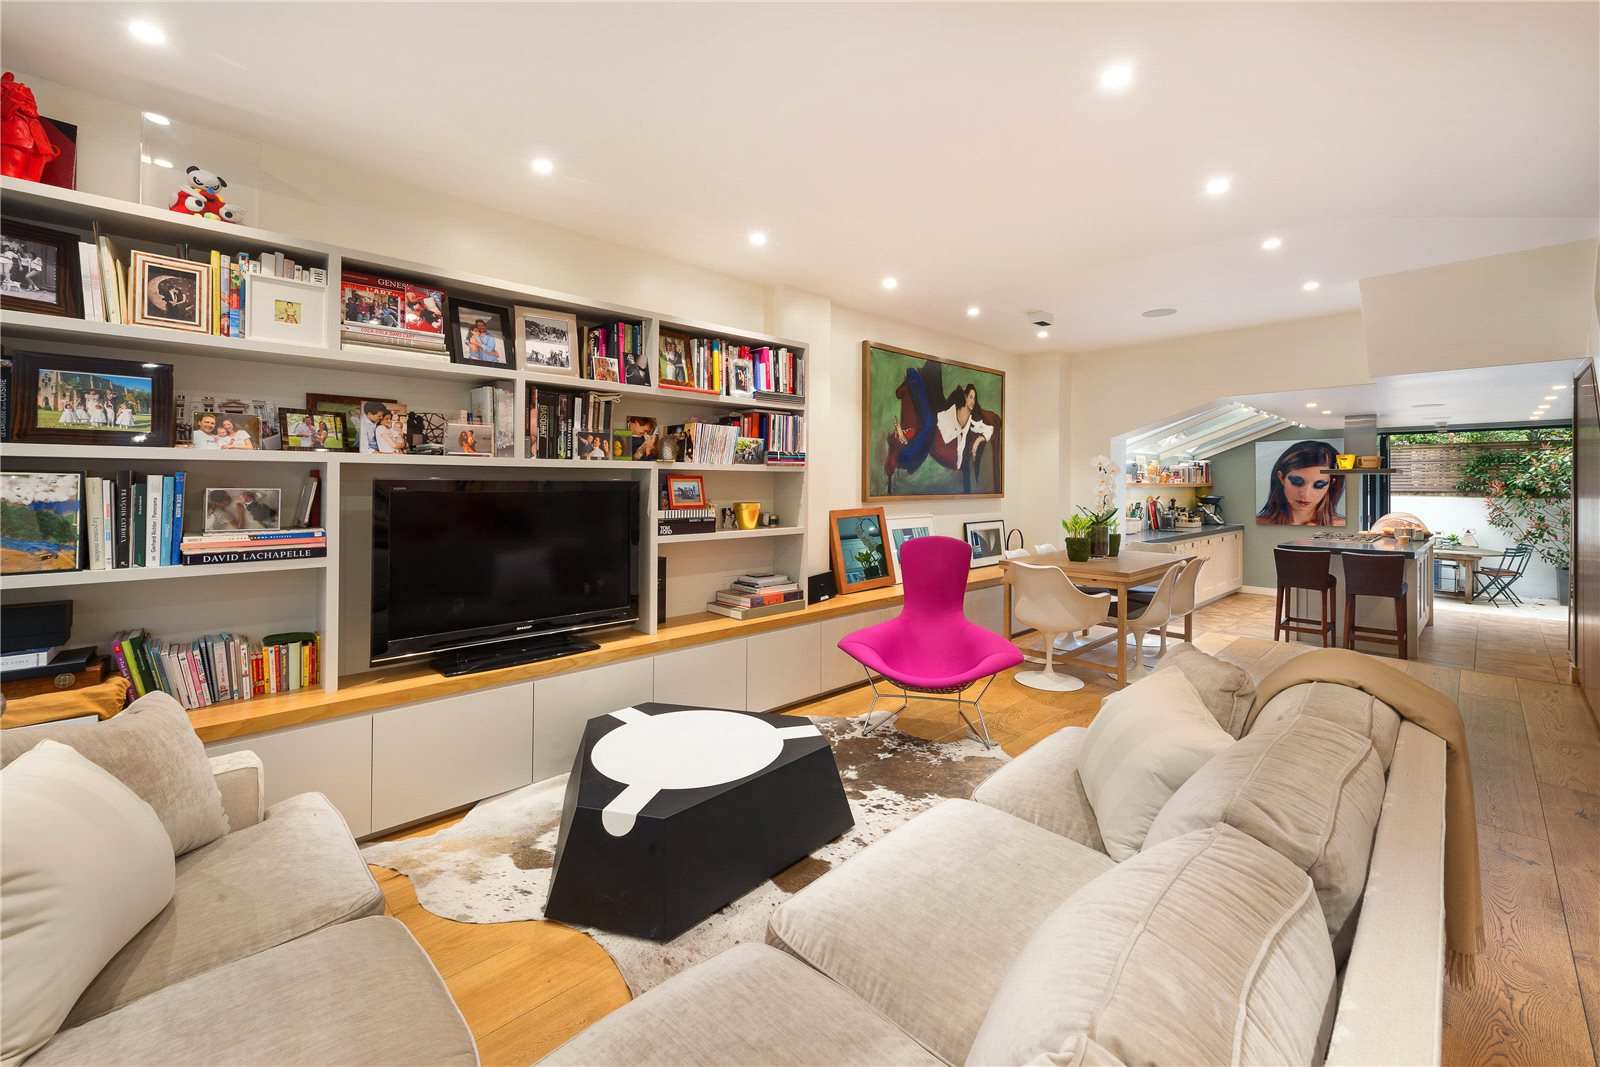 Single Family Home for Sale at Stadium Street, Chelsea, London, SW10 Chelsea, London, England